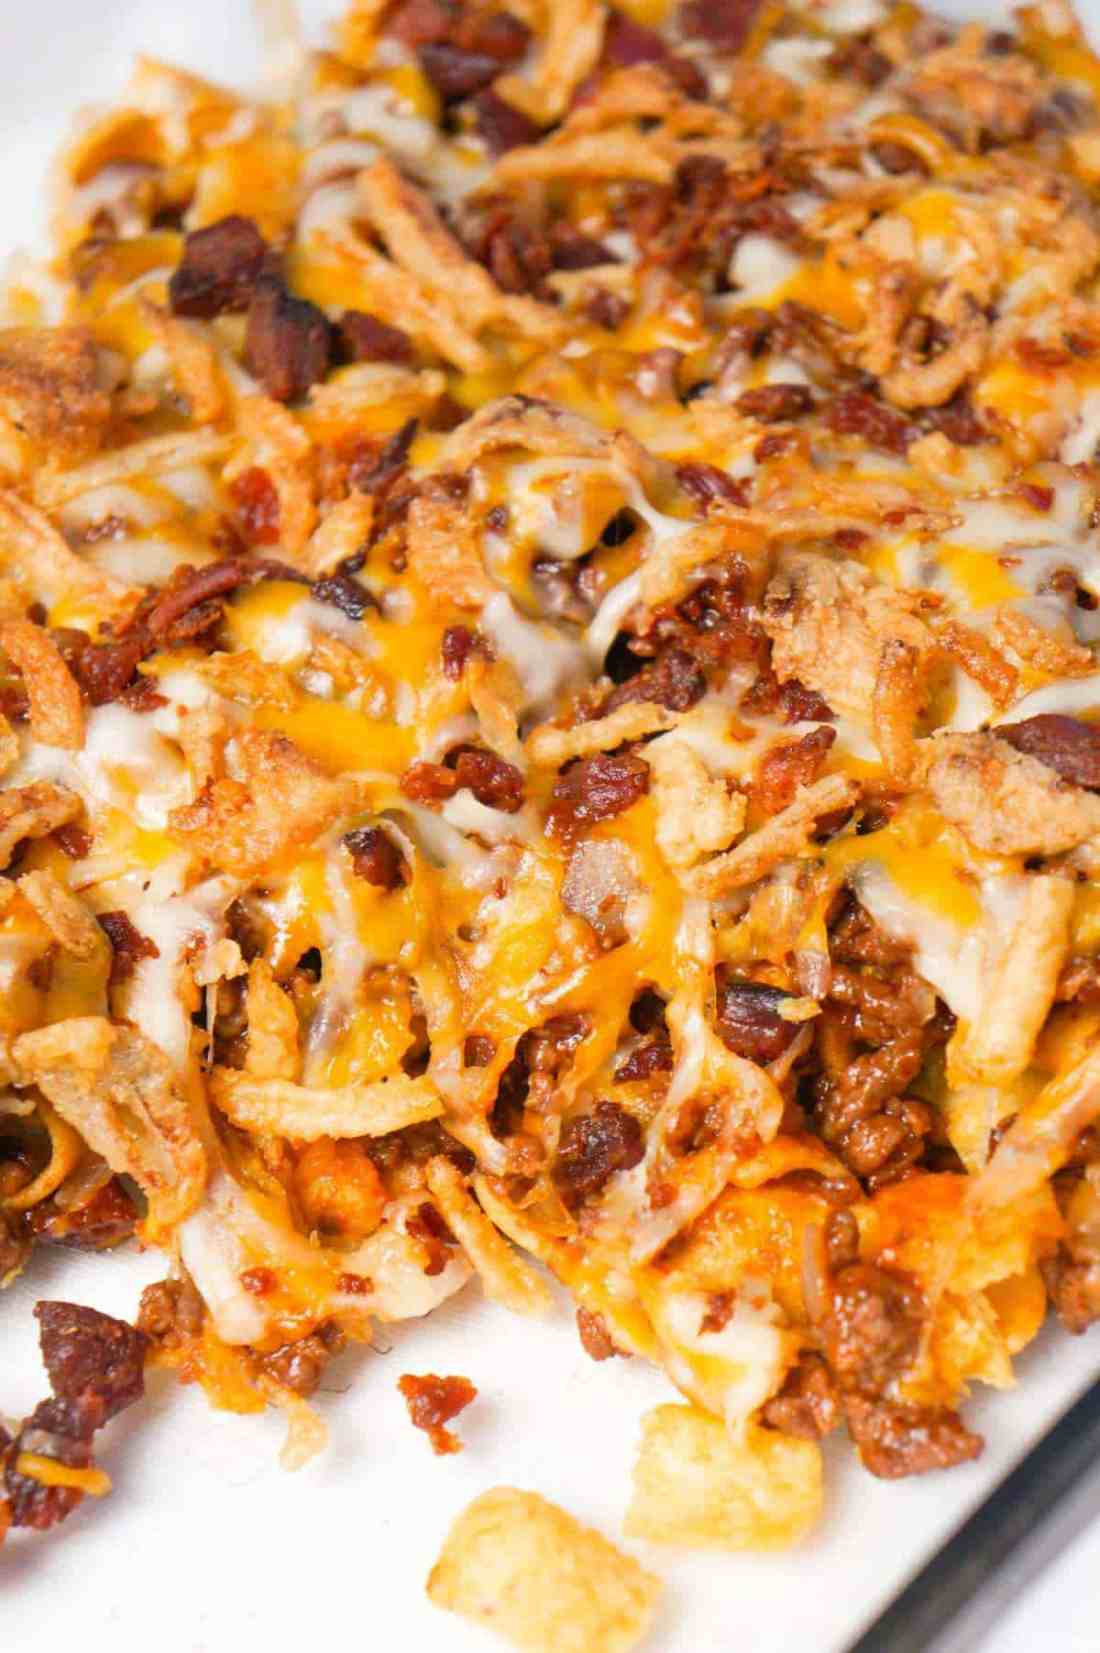 BBQ Bacon Cheeseburger Frito Pie is a delicous casserole with a base of Fritos corn chips, topped with ground beef and bacon crumble tossed in BBQ sauce, shredded cheese and French's fried onions.